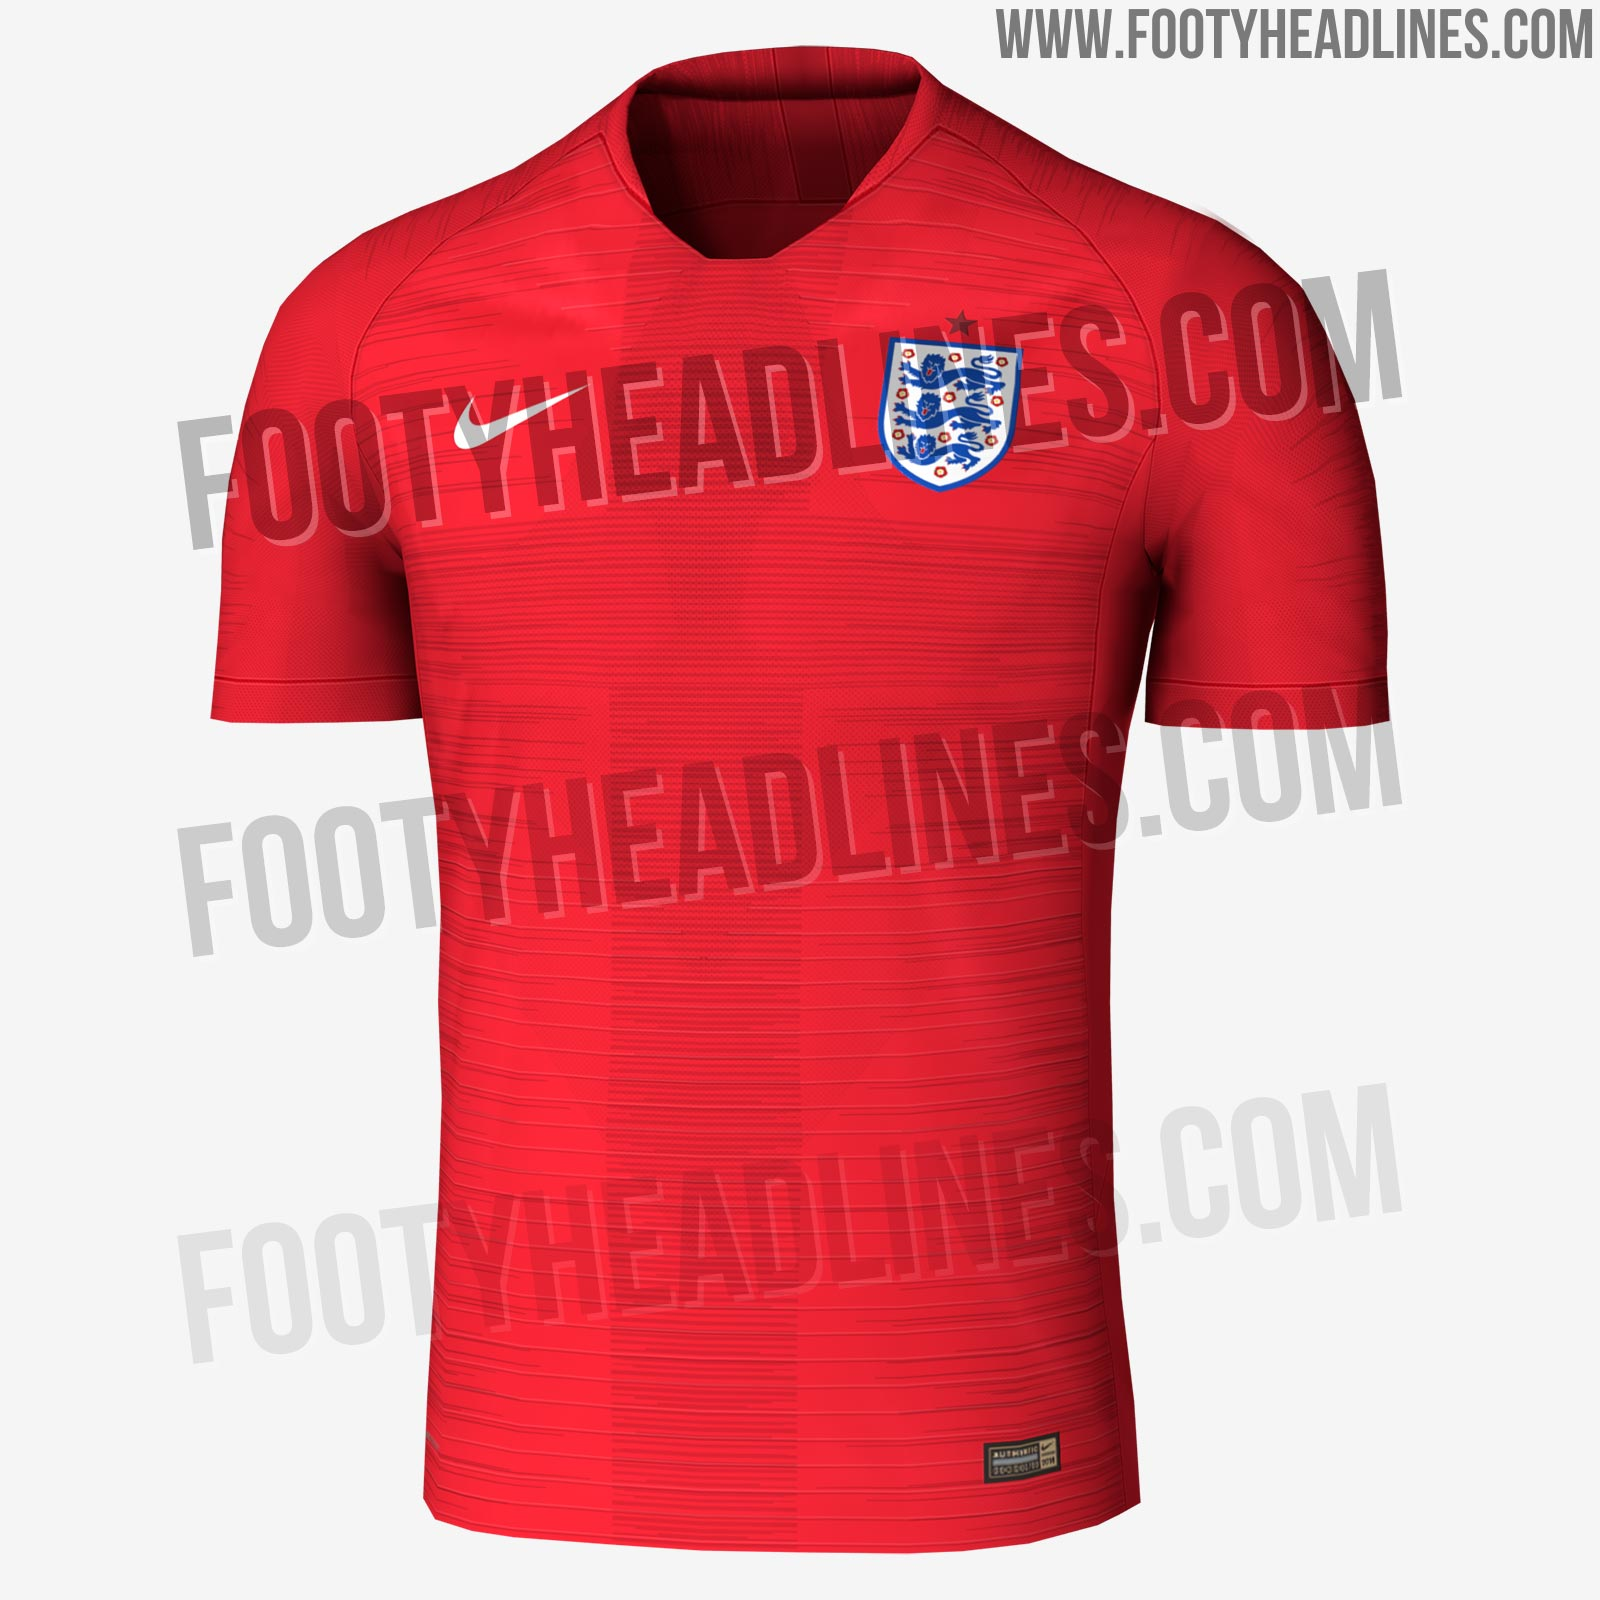 Top England Kit World Cup 2018 - england-2018-world-cup-kits%2B%25287%2529  Trends_495969 .jpg